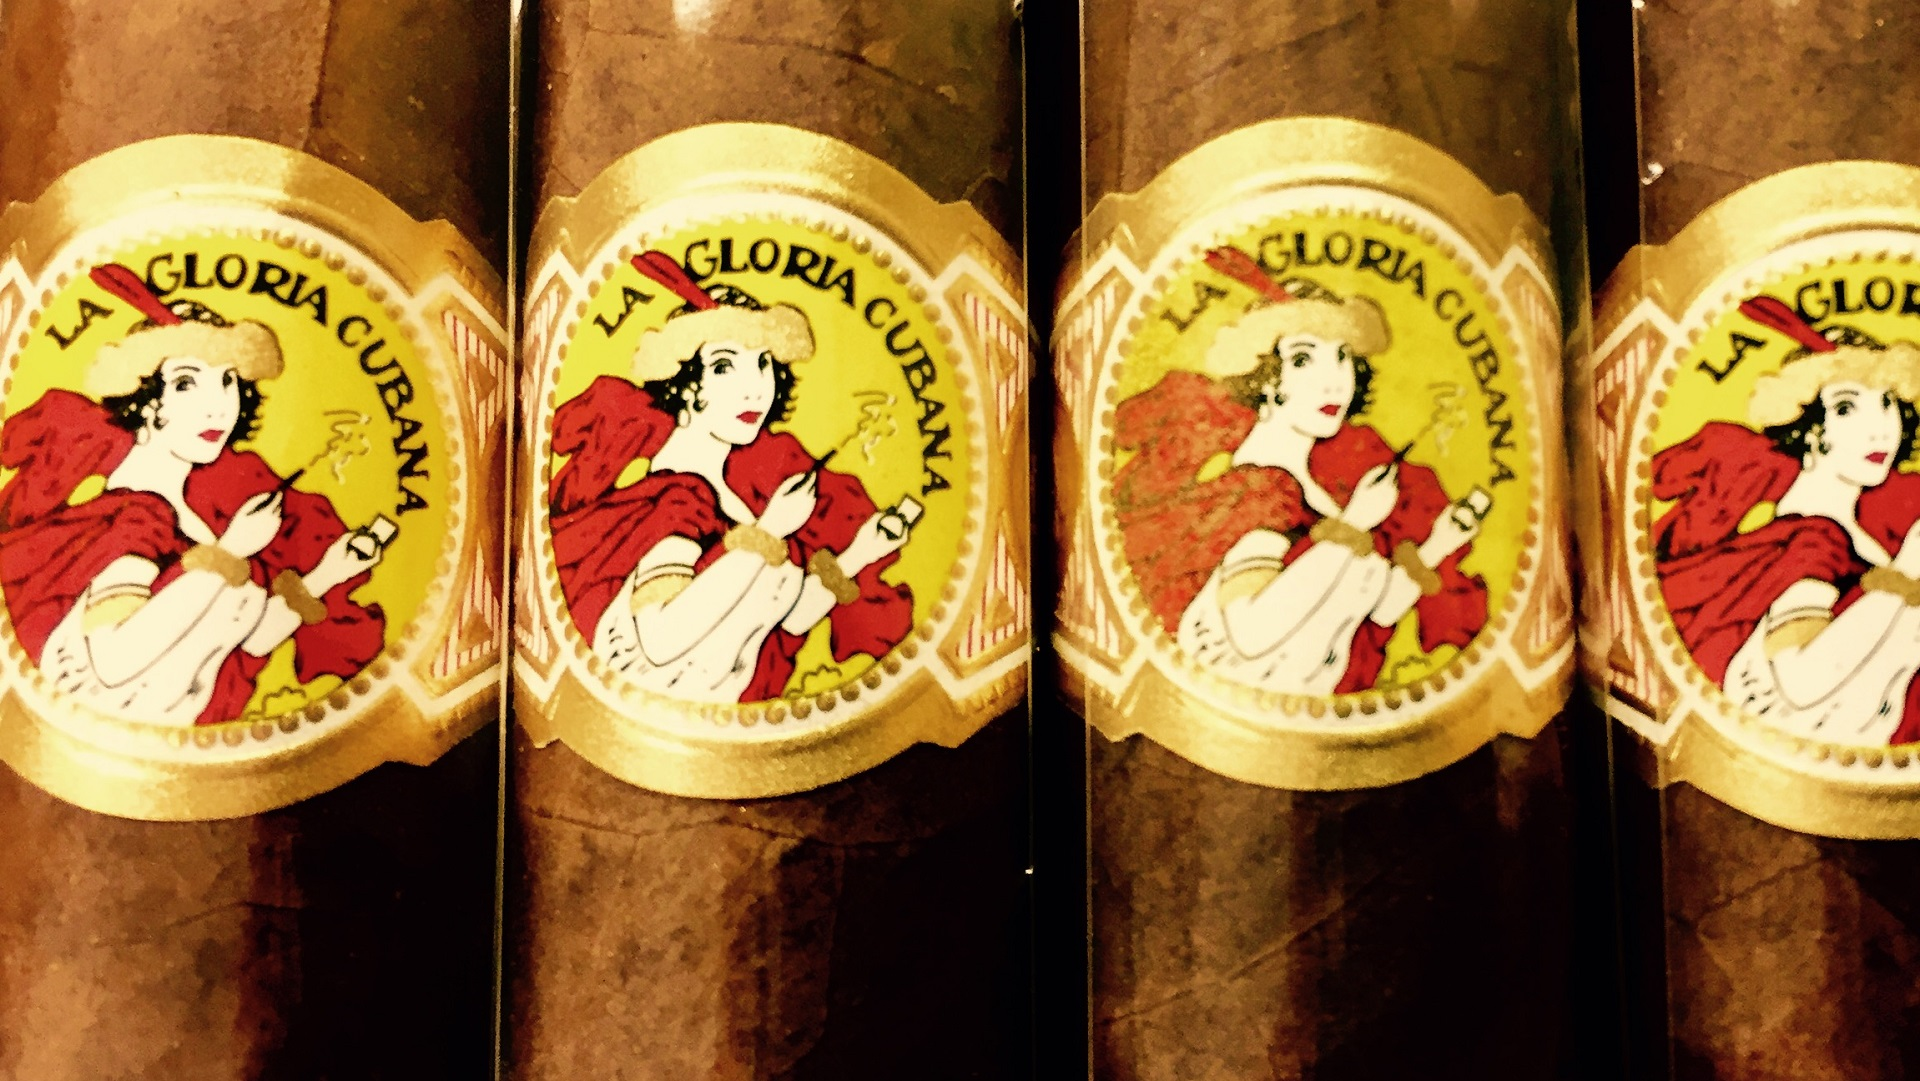 la gloria cubana cigars sticks image